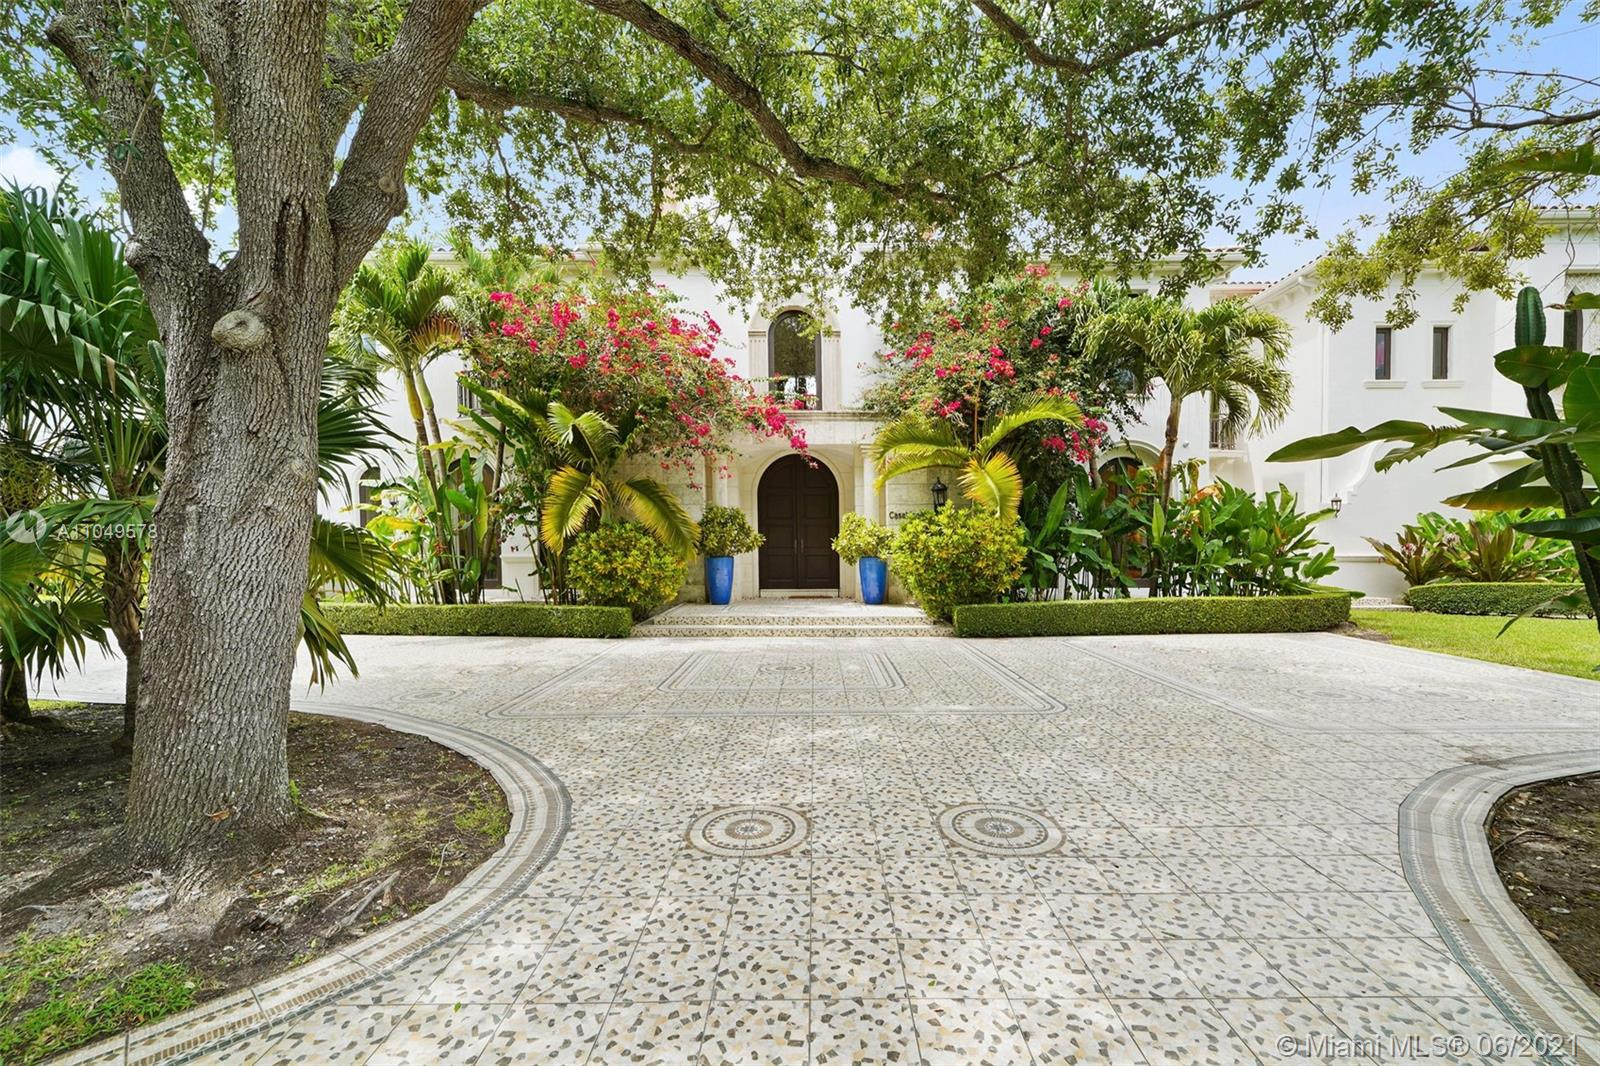 Located in one of Miami's most prestigious neighborhoods, Ponce Davis. This palatial estate with 8 beds, 10 full and 2 half baths evoke Mediterranean Revival grandeur. Spanning 10,000+ sq ft, plus separate guest house, with arched walkway courtyards, covered terraces and open balconies overlooking the heated pool and spa. Residents are welcomed by a grand atrium, winding staircase and coffered ceilings. Impressive gourmet kitchen with high-end appliances. Luxurious Master Suite boasts large sitting area, private balcony, his/hers walk-in closets, spacious bath with separate shower and spa tub. Designed for large scale entertaining with oversized formal dining and family room. Maids quarters. Additional features: media room, elevator, 4 car garage, full house generator and summer kitchen.